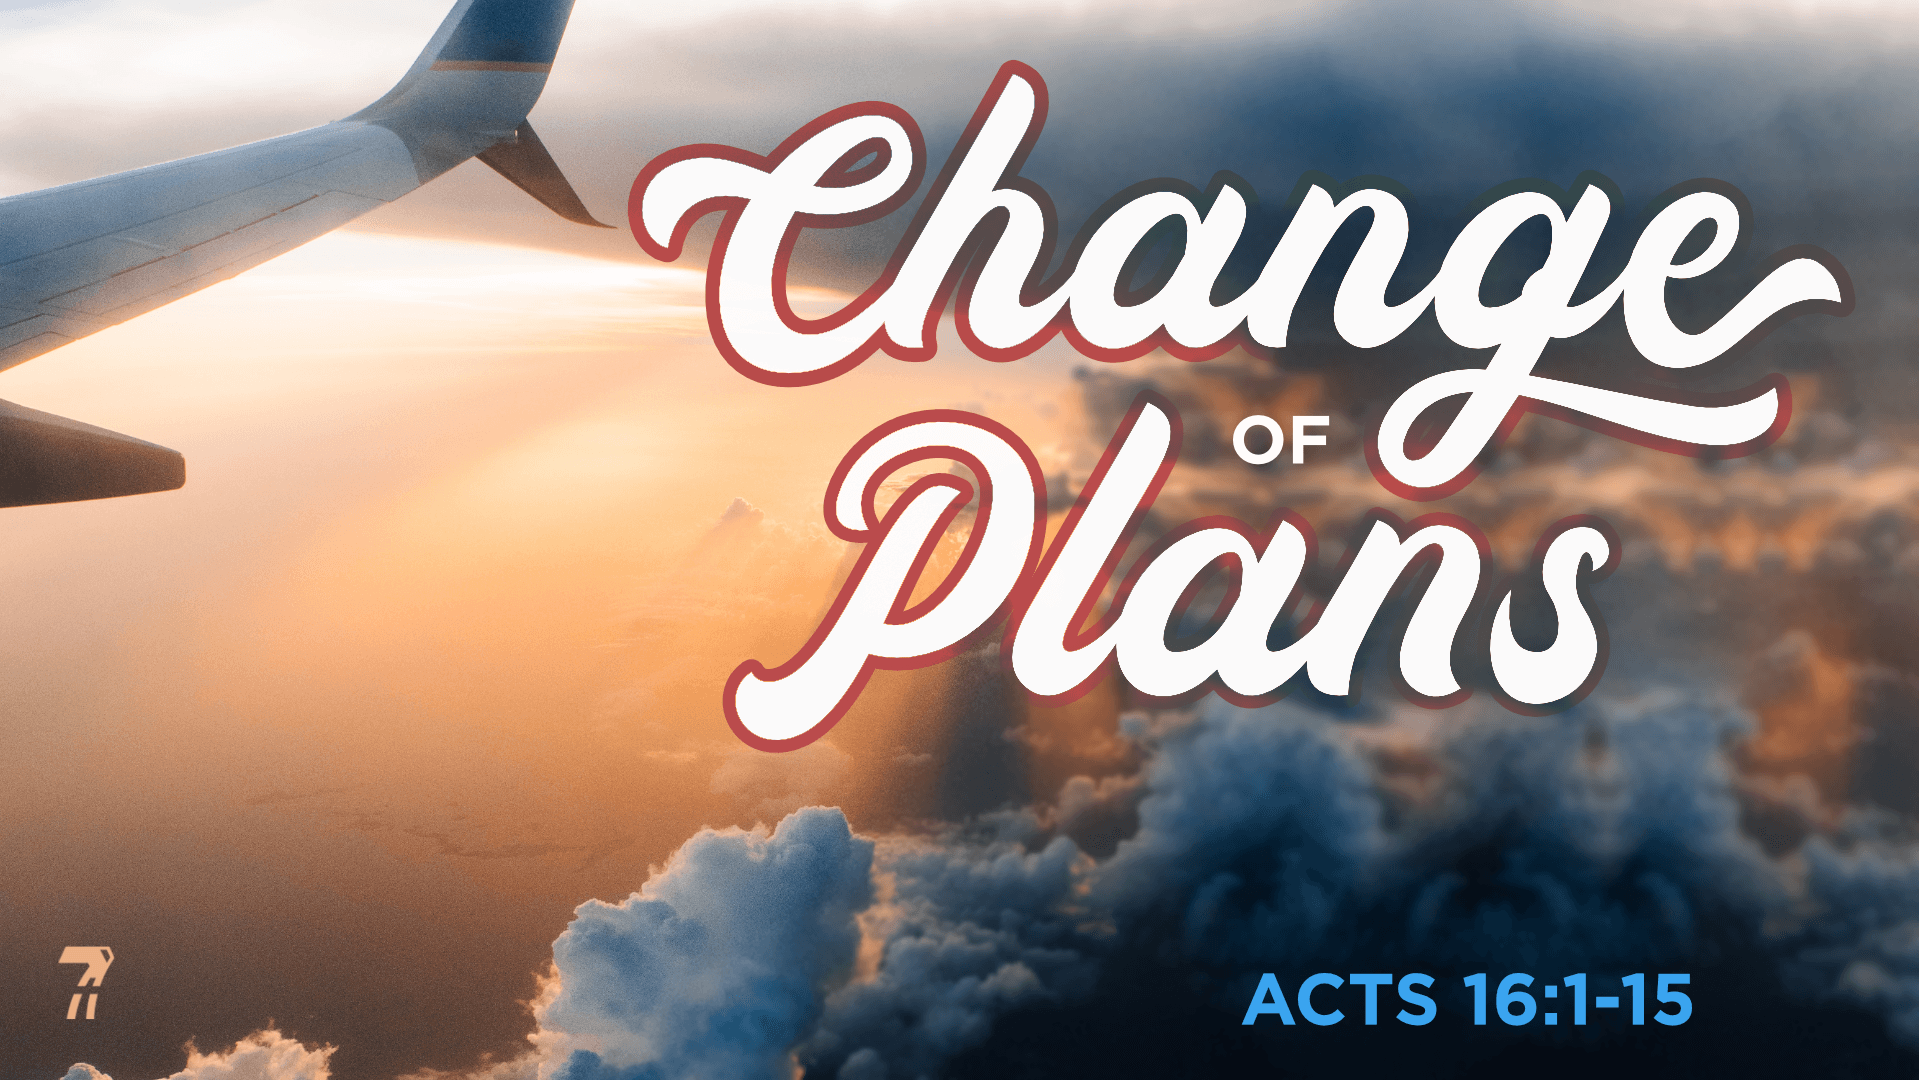 Acts 16 – Change of Plans